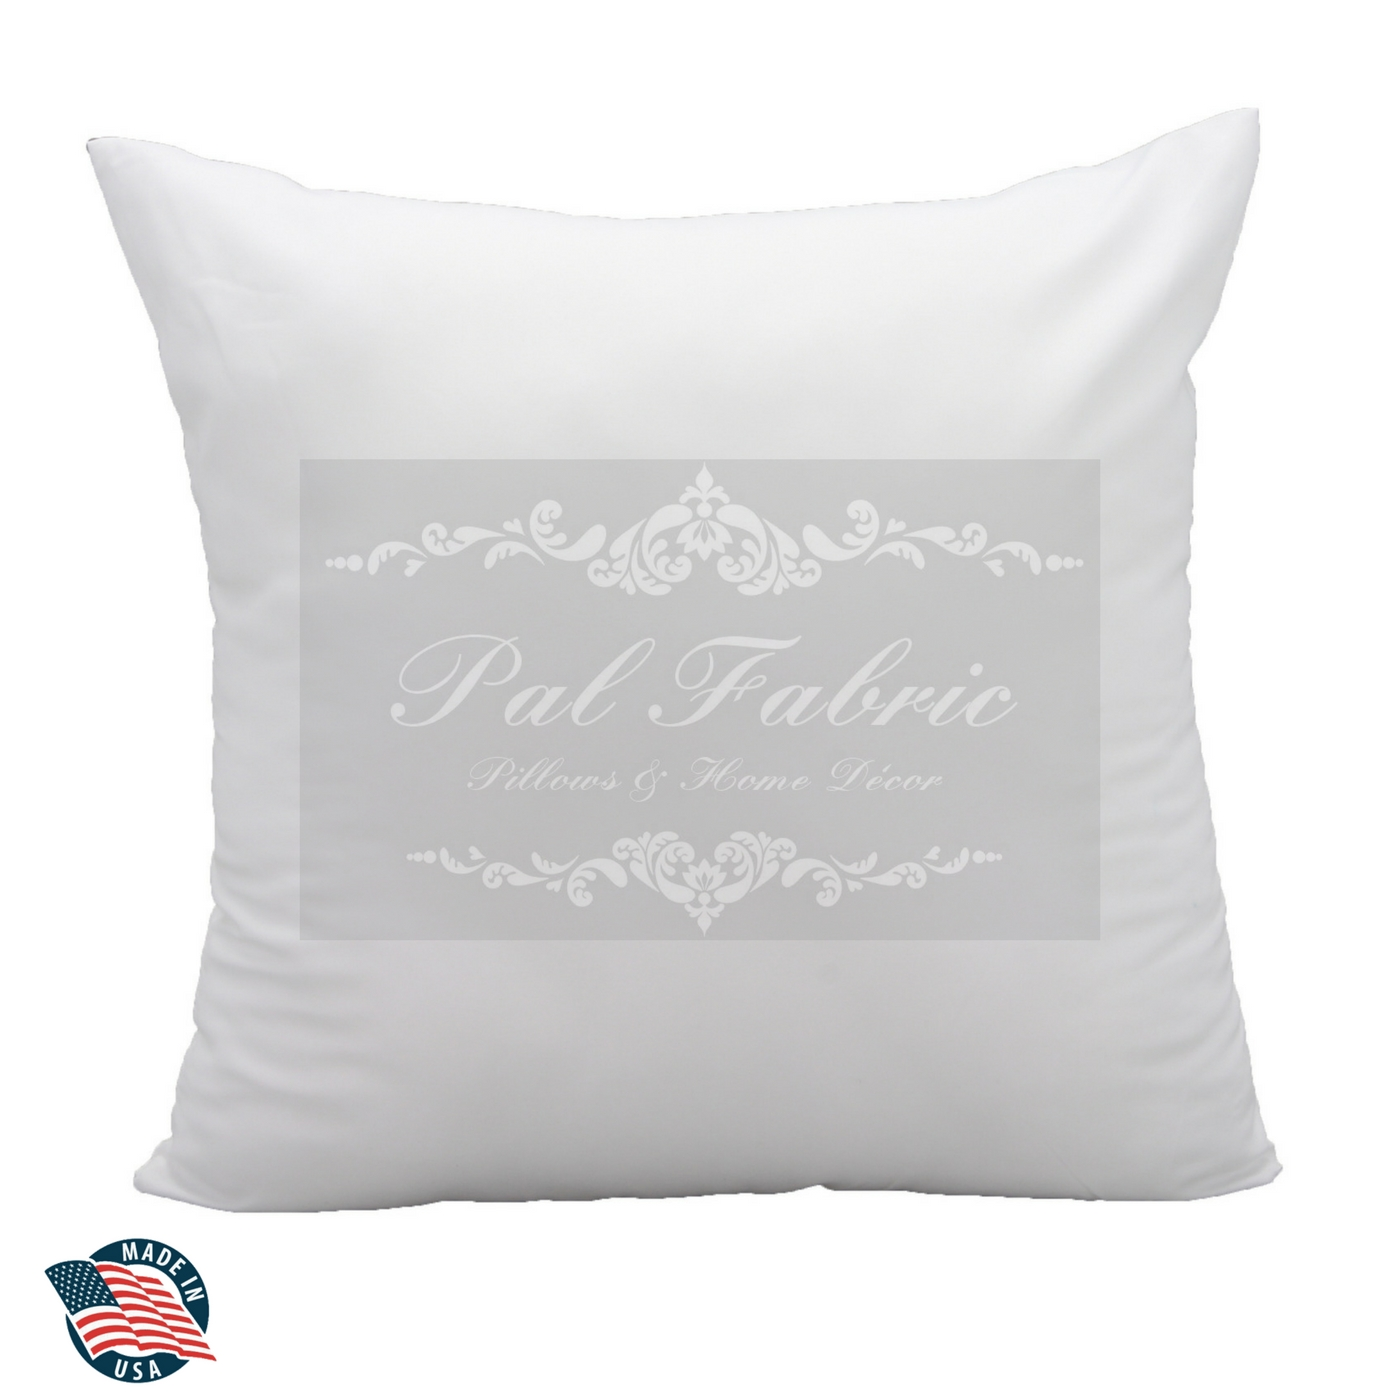 Made in USA New Pillow Insert Form Square Euro Premium ALL SIZES!